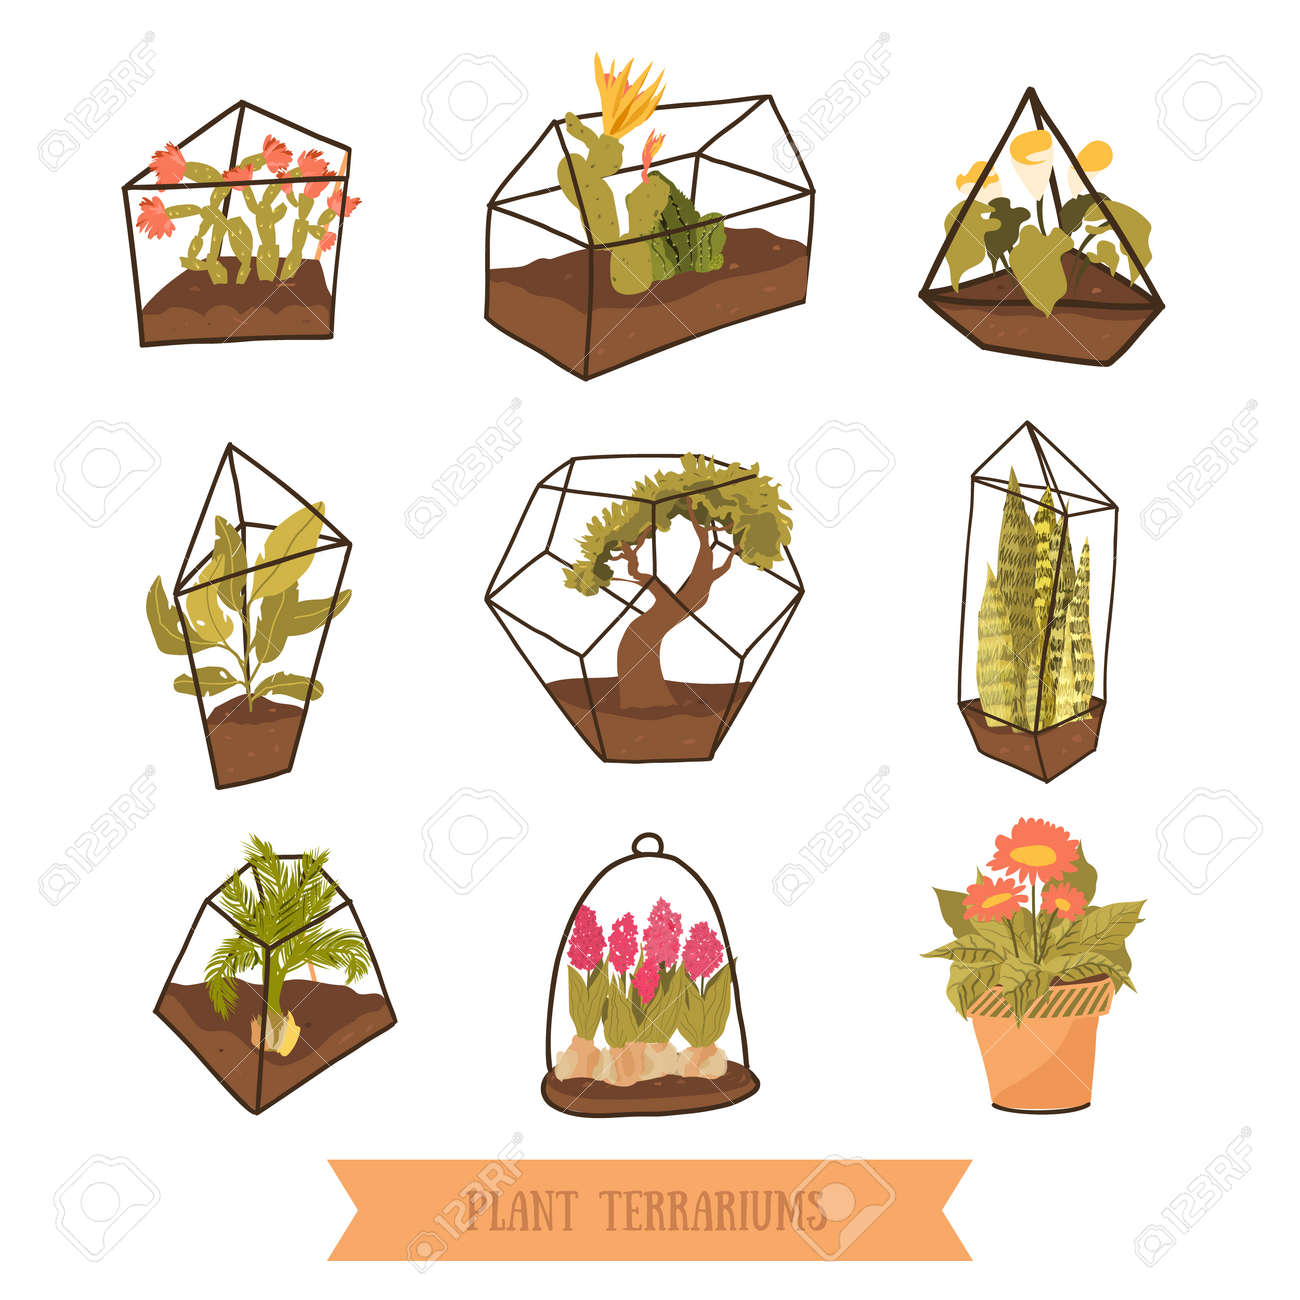 Doodle Terrariums With Plants For Succulents And Cactus Glass Royalty Free Cliparts Vectors And Stock Illustration Image 103732596